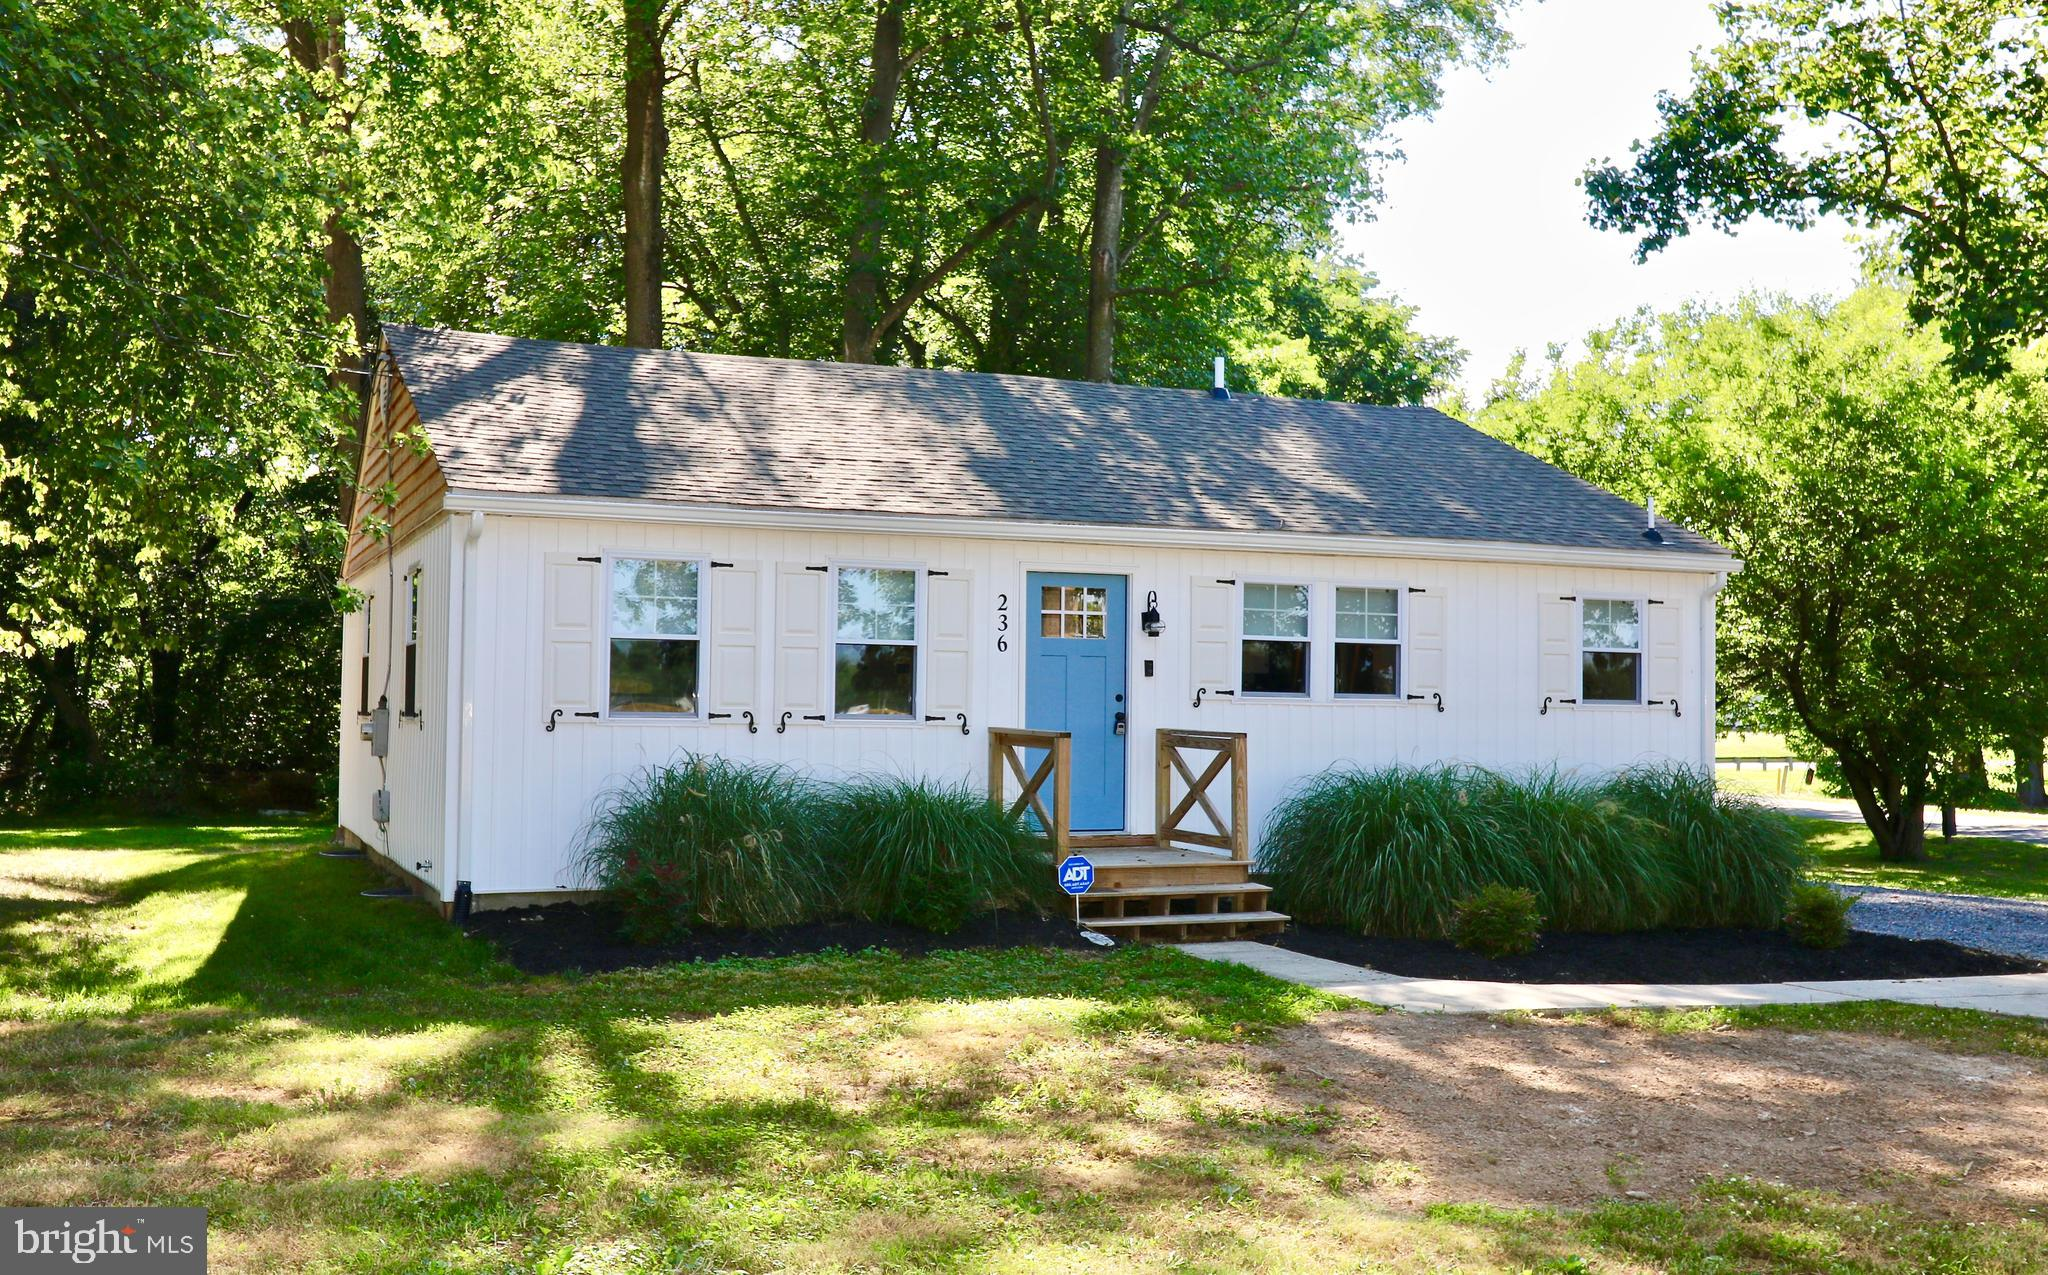 A MUST SEE!! Beautifully renovated ranch home with  3 spacious bedrooms. Featuring a full basement (unfinished),  stainless steel appliances, updated flooring , light fixtures, chair rail and more. This home also has a newer roof,  siding and septic system and sits on 1.3 acres!!  This one will NOT disappoint!